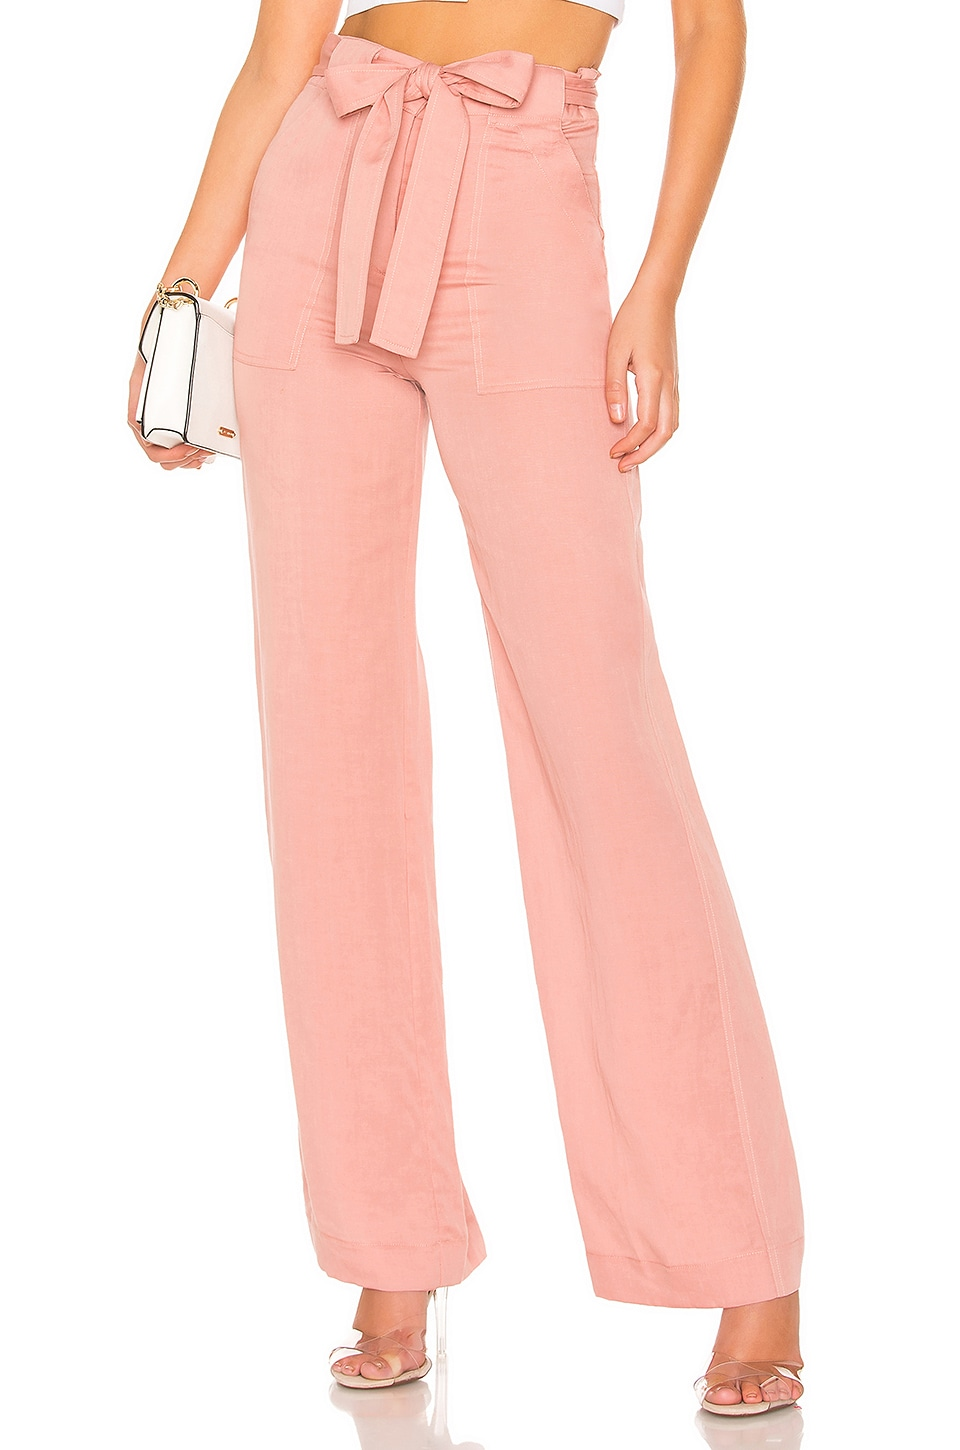 Tularosa Perrie Pants in Rose